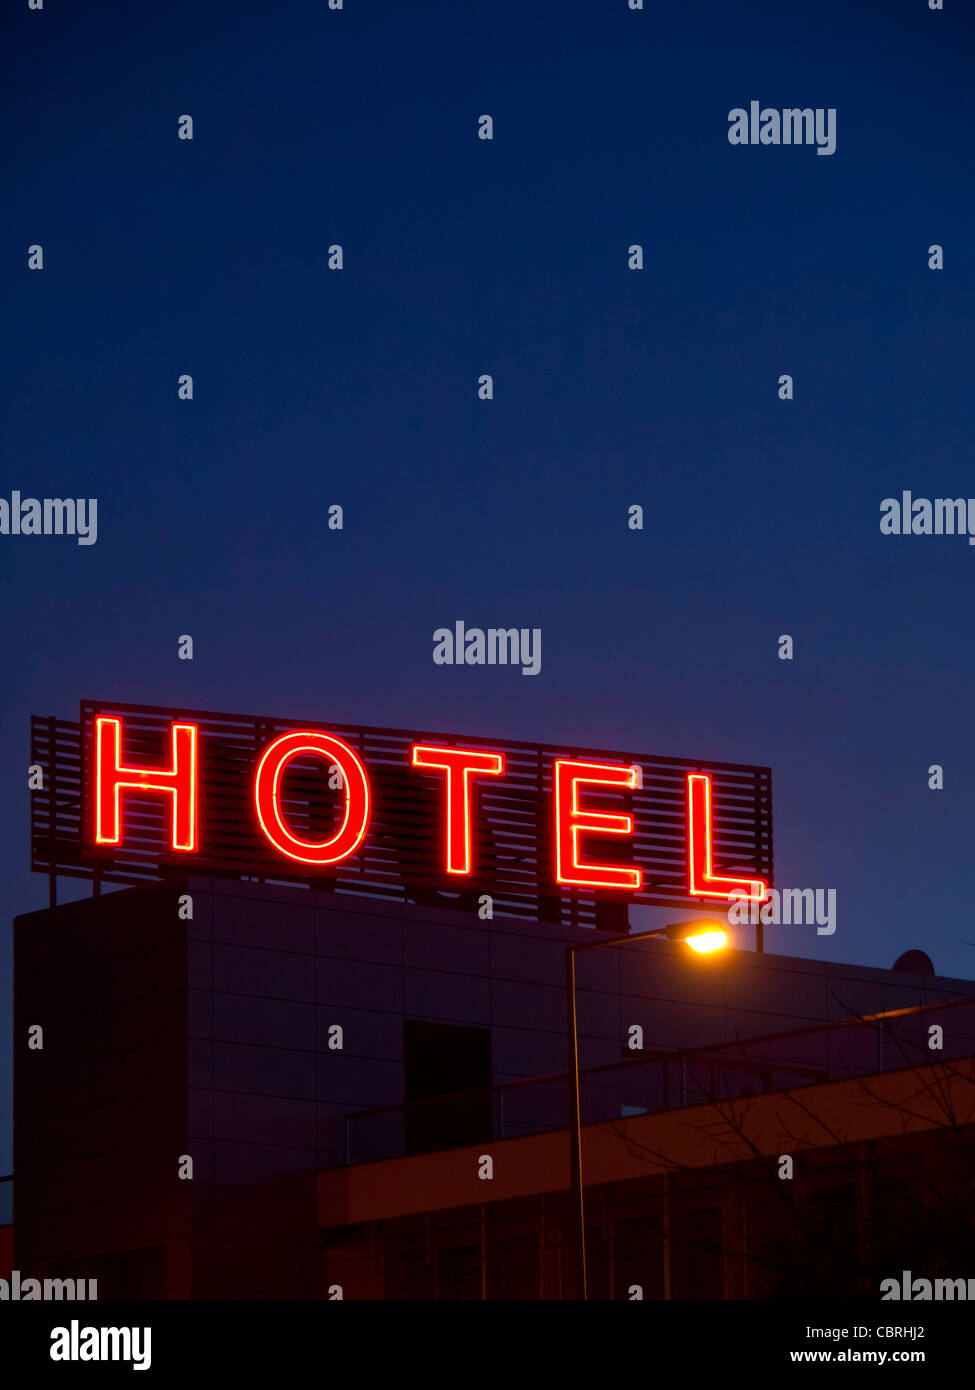 Hotel neon sign by night - Stock Image